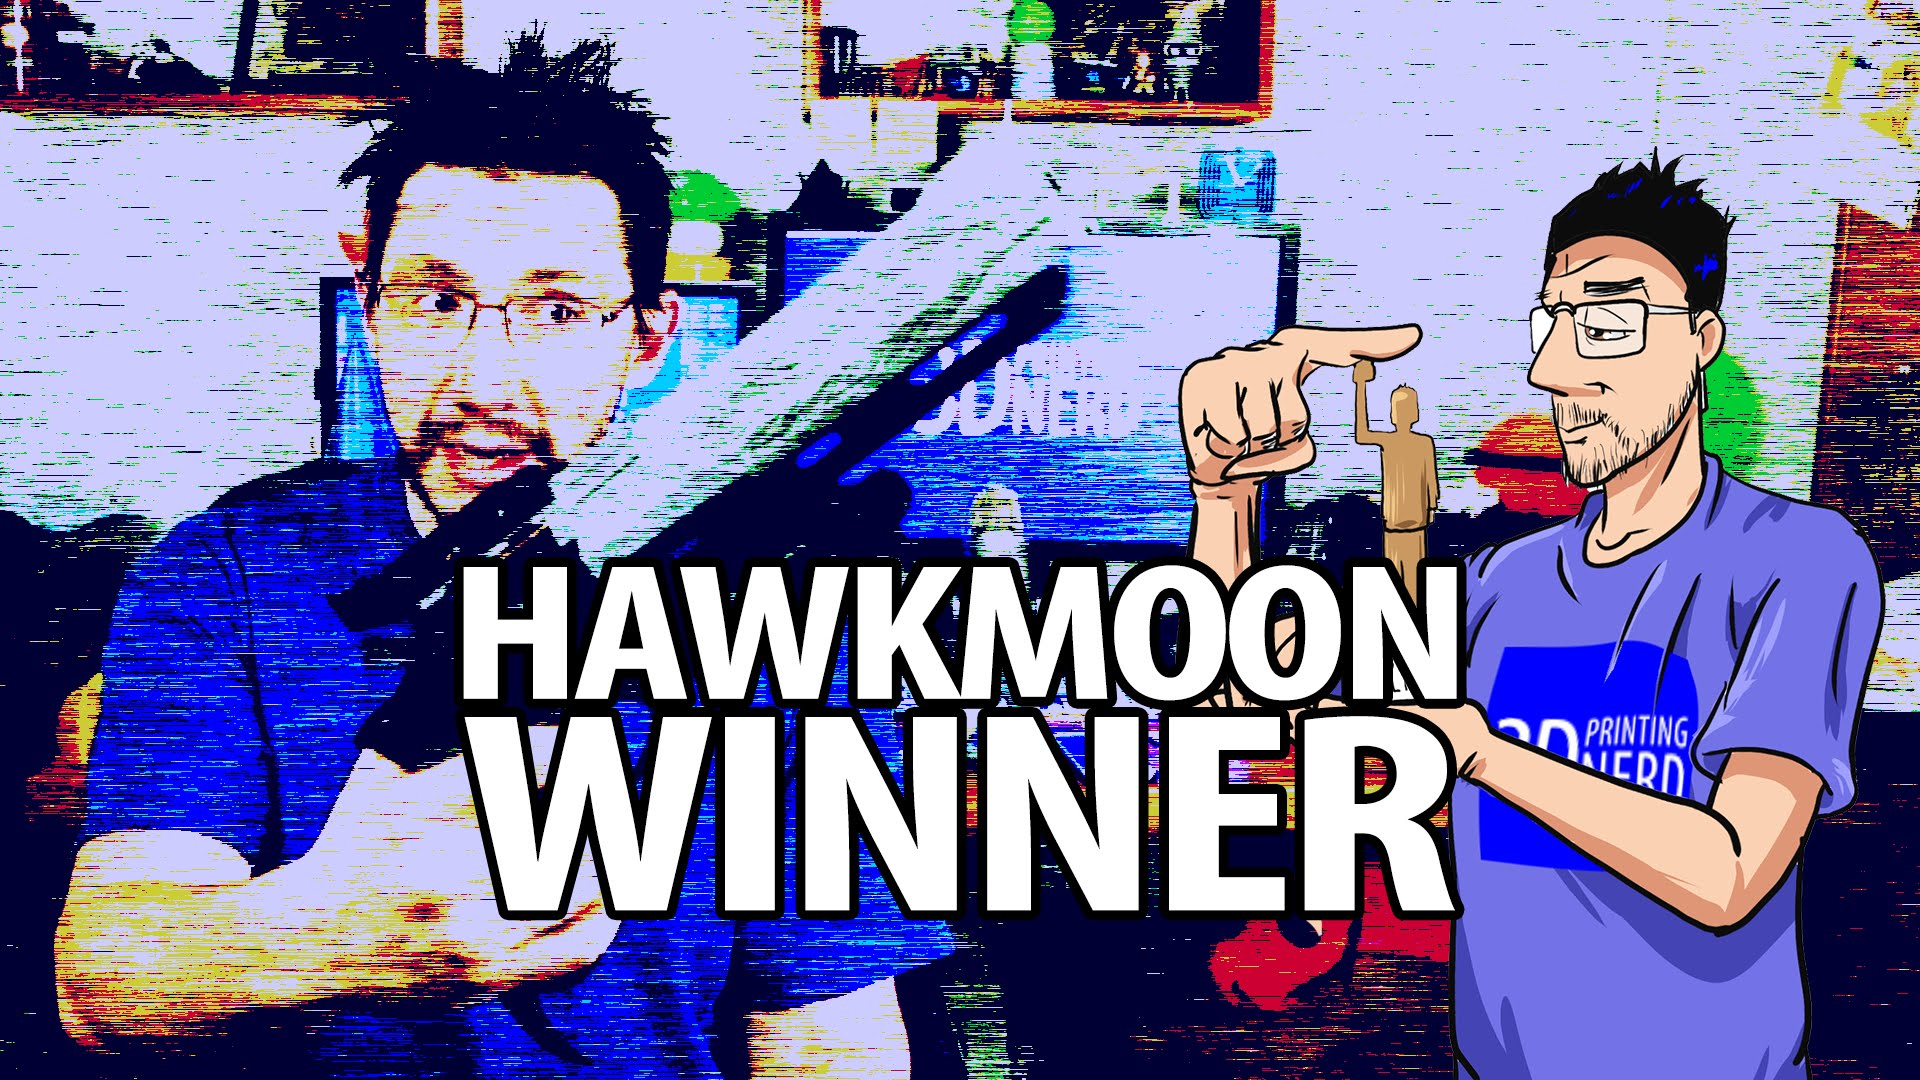 3D Printed Hawkmoon WInner Announced